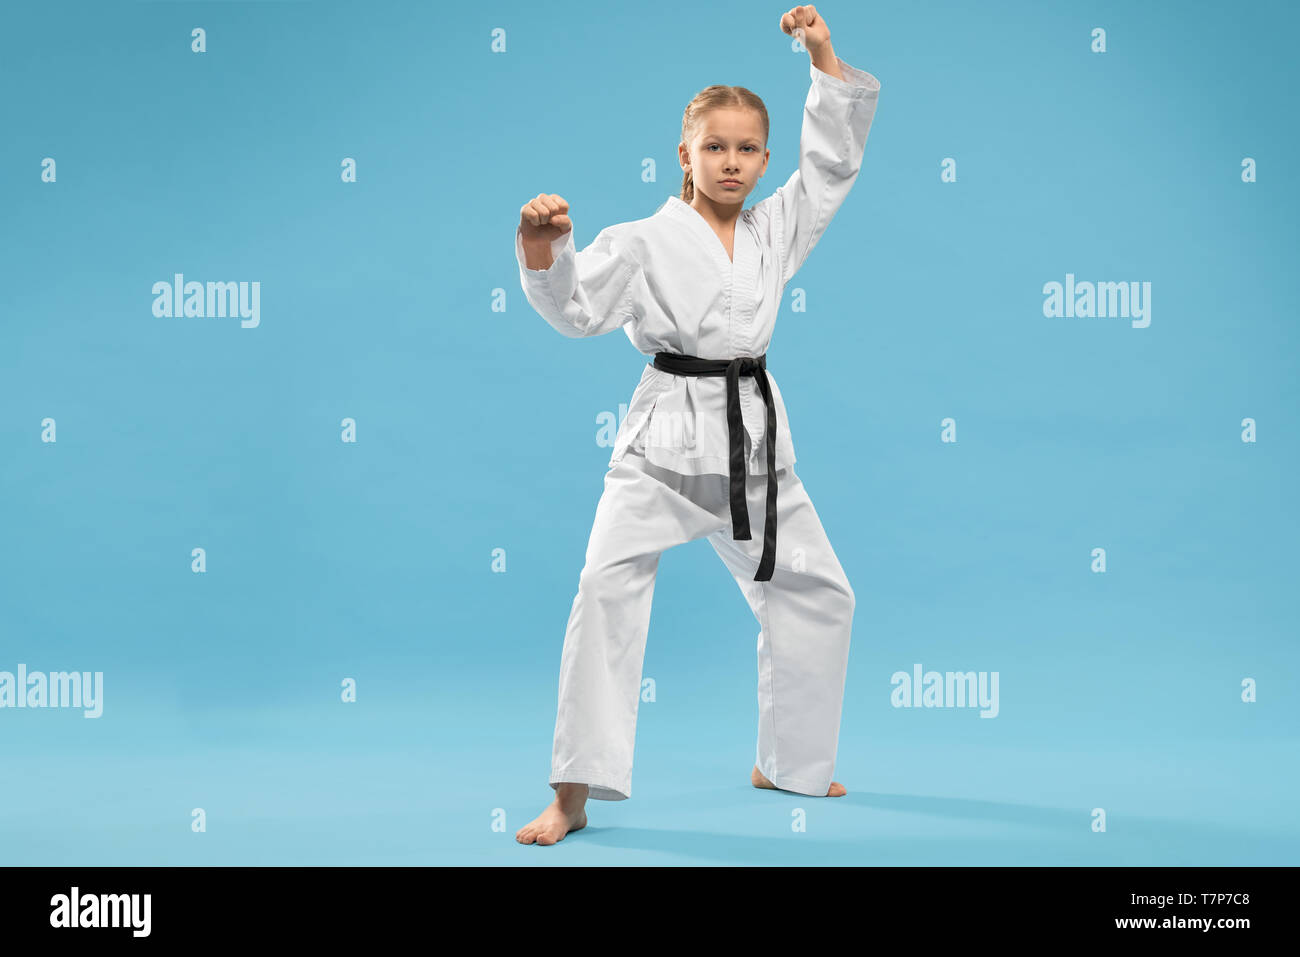 Karate Stance Front High Resolution Stock Photography And Images Alamy